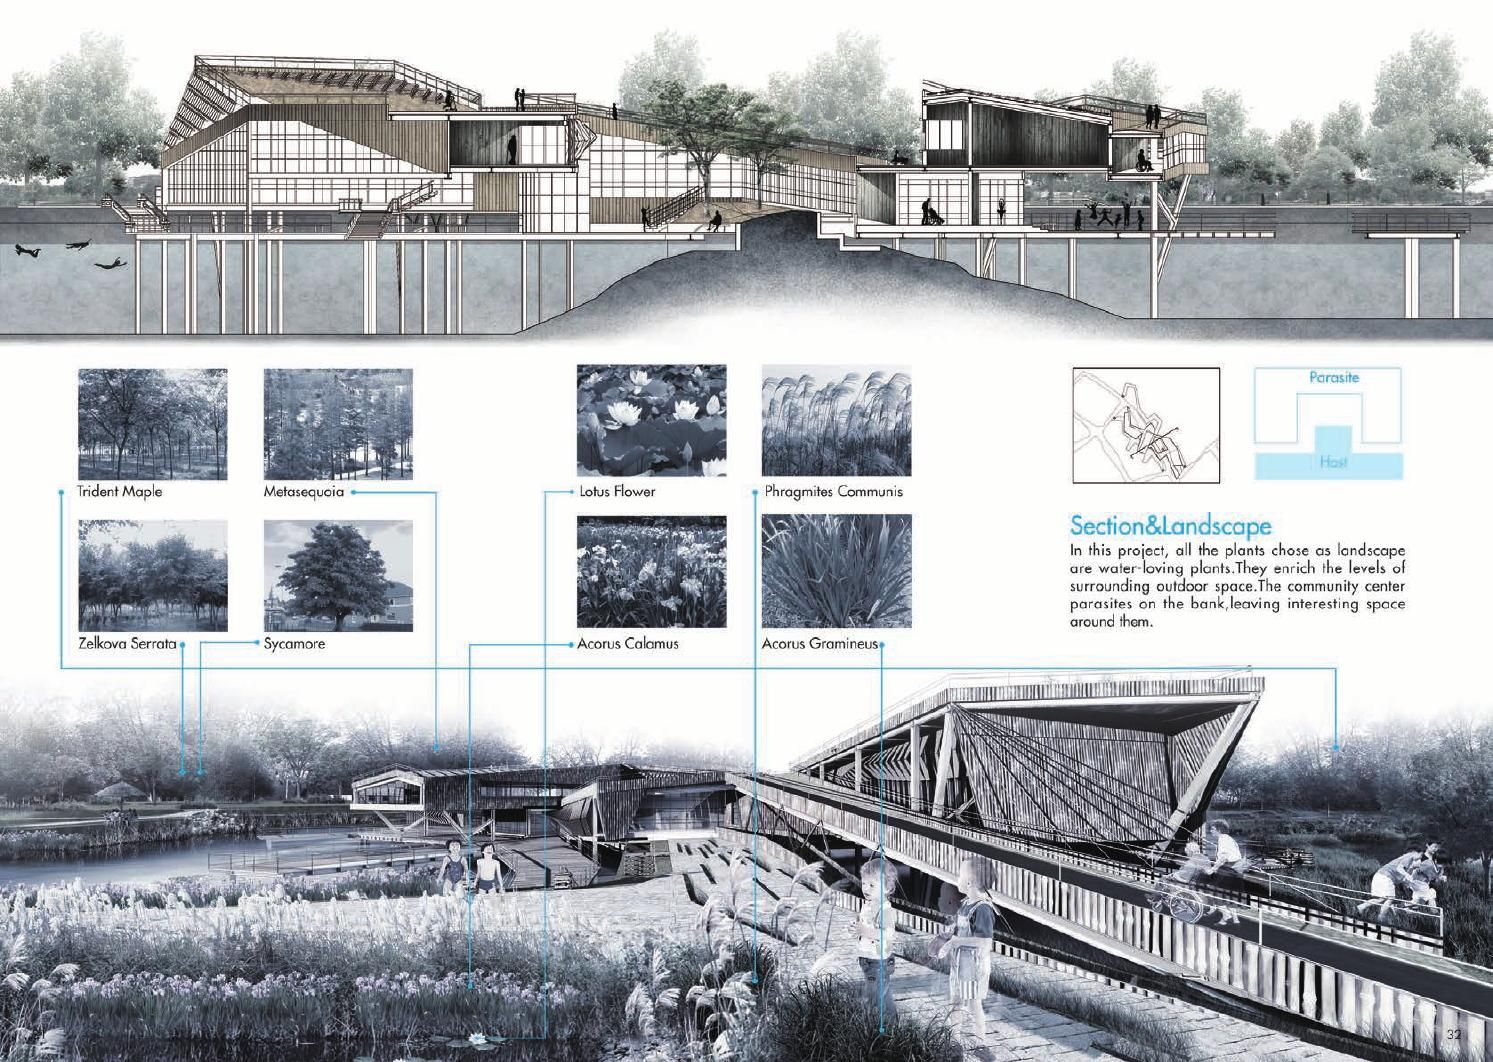 Architecture Portfolio 2015 Fall Jiyuan Liu Offer:GSAPP MSAAD, UPenn PPD, UMich MArch II, Virginia Tech MArch II, Wustl MArch II ap, UIUC MArch II, HKU MArch, TUD MS in Arch, UCL March, CTH March 3\4 Scholarship